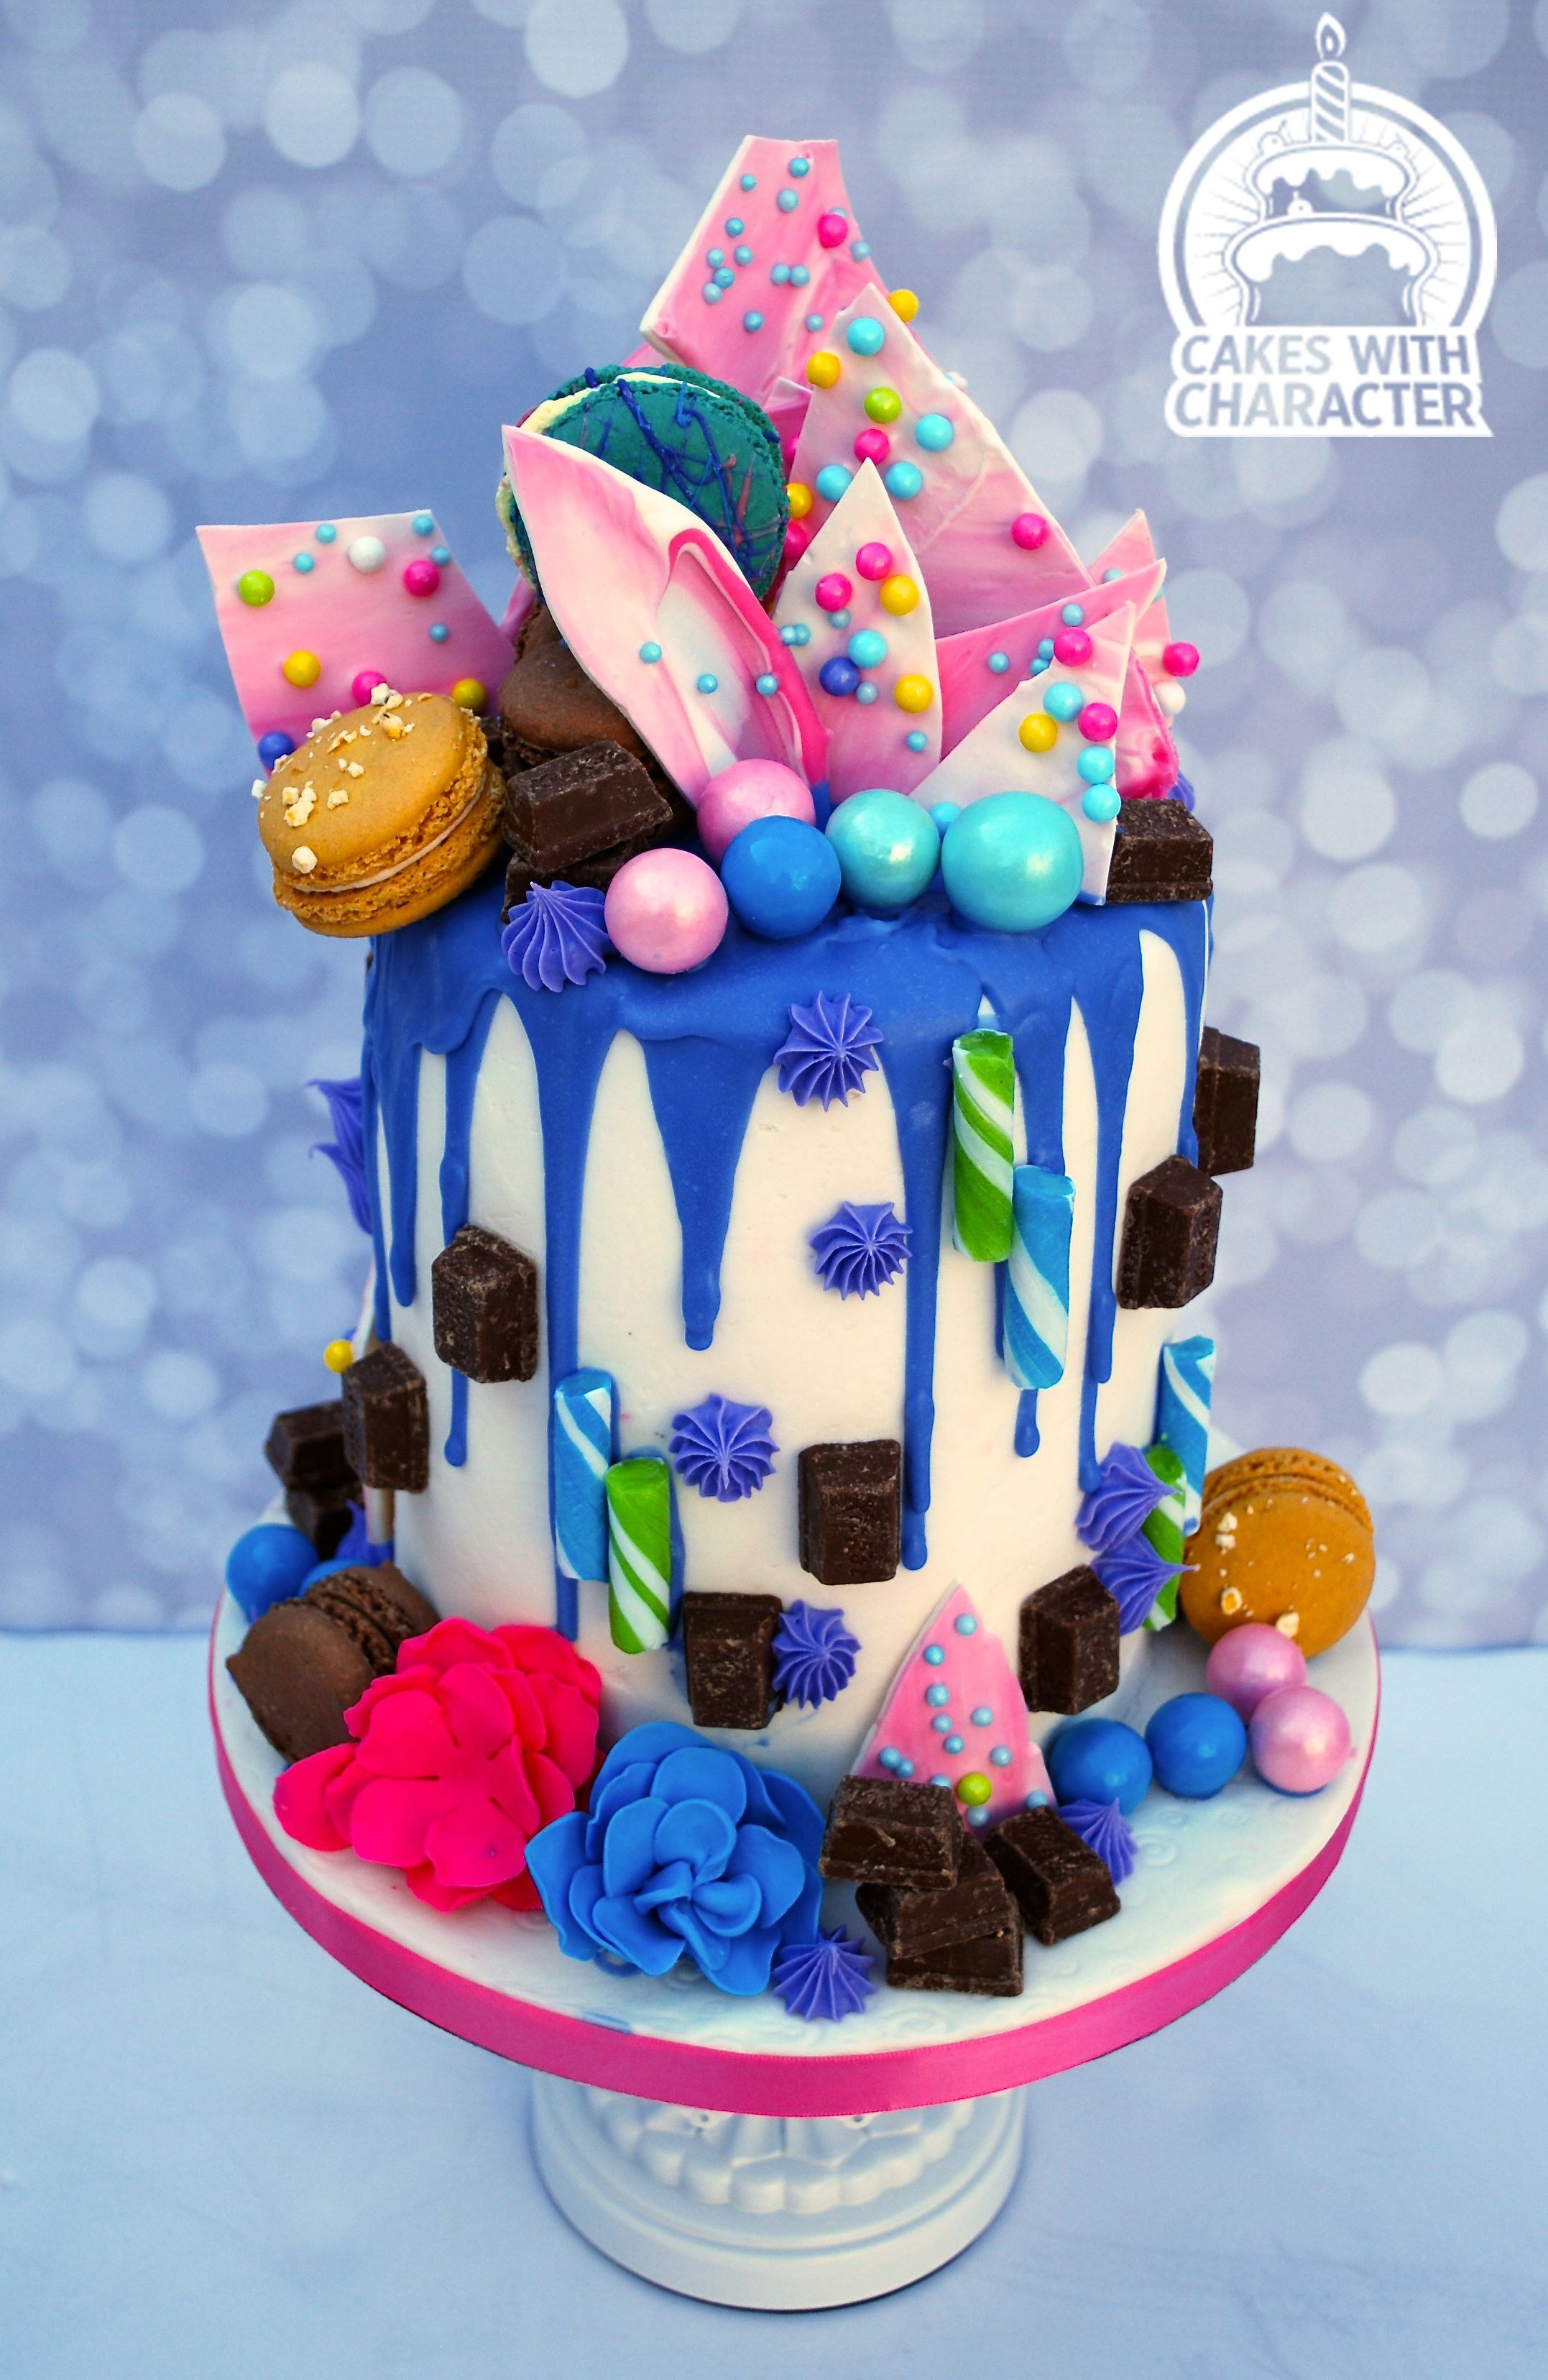 By Cakes with Character - For all your cake decorating ...